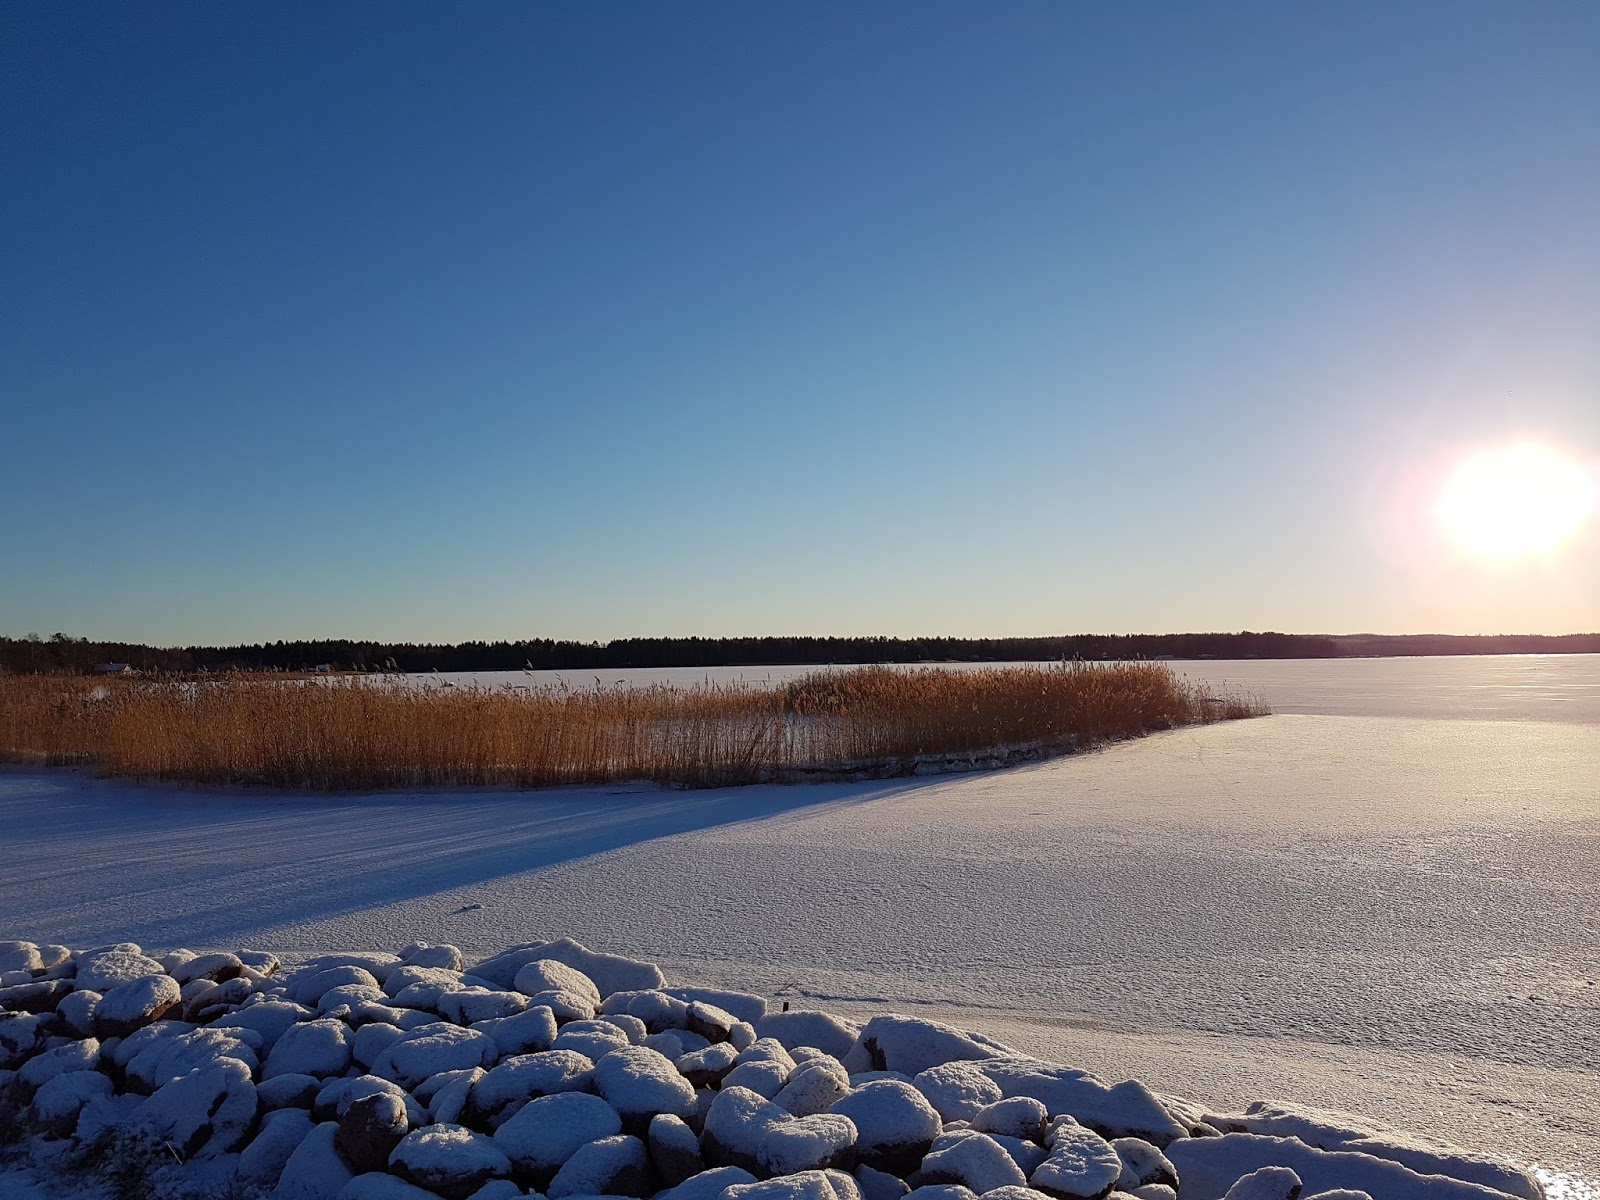 frozen sea and reeds scenery picture